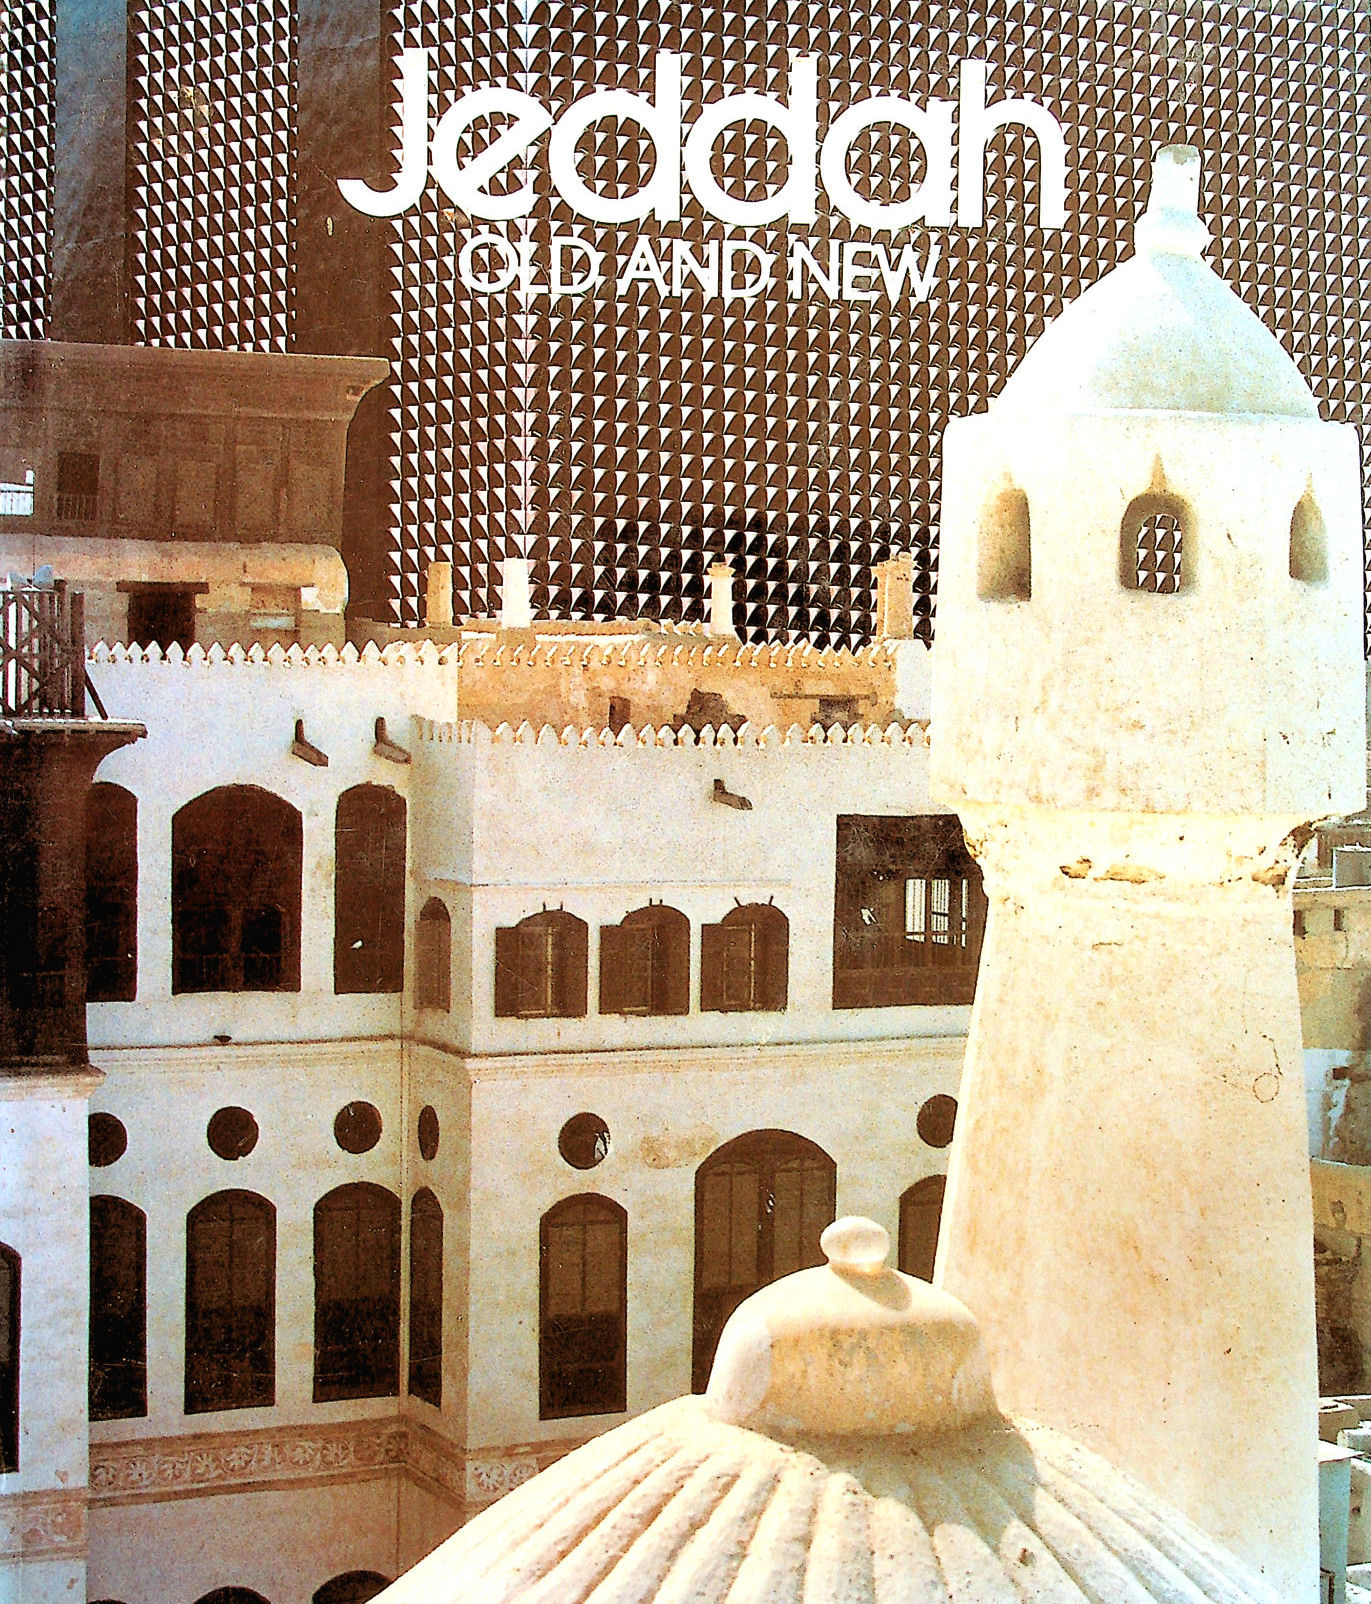 Image for Jeddah: Old and New